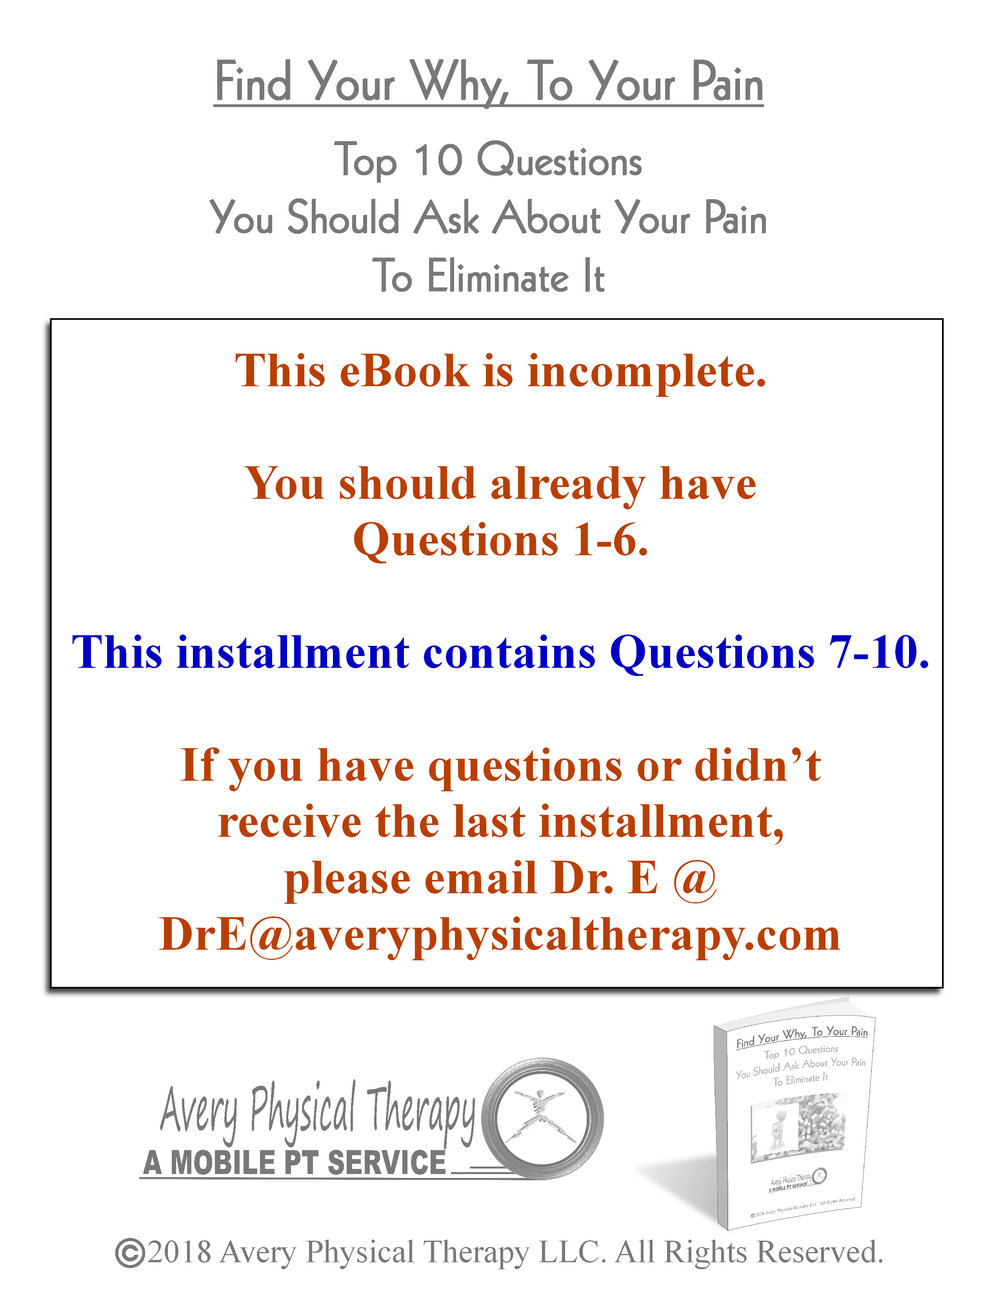 Top 10 Pain Questions 7-10D.JPG